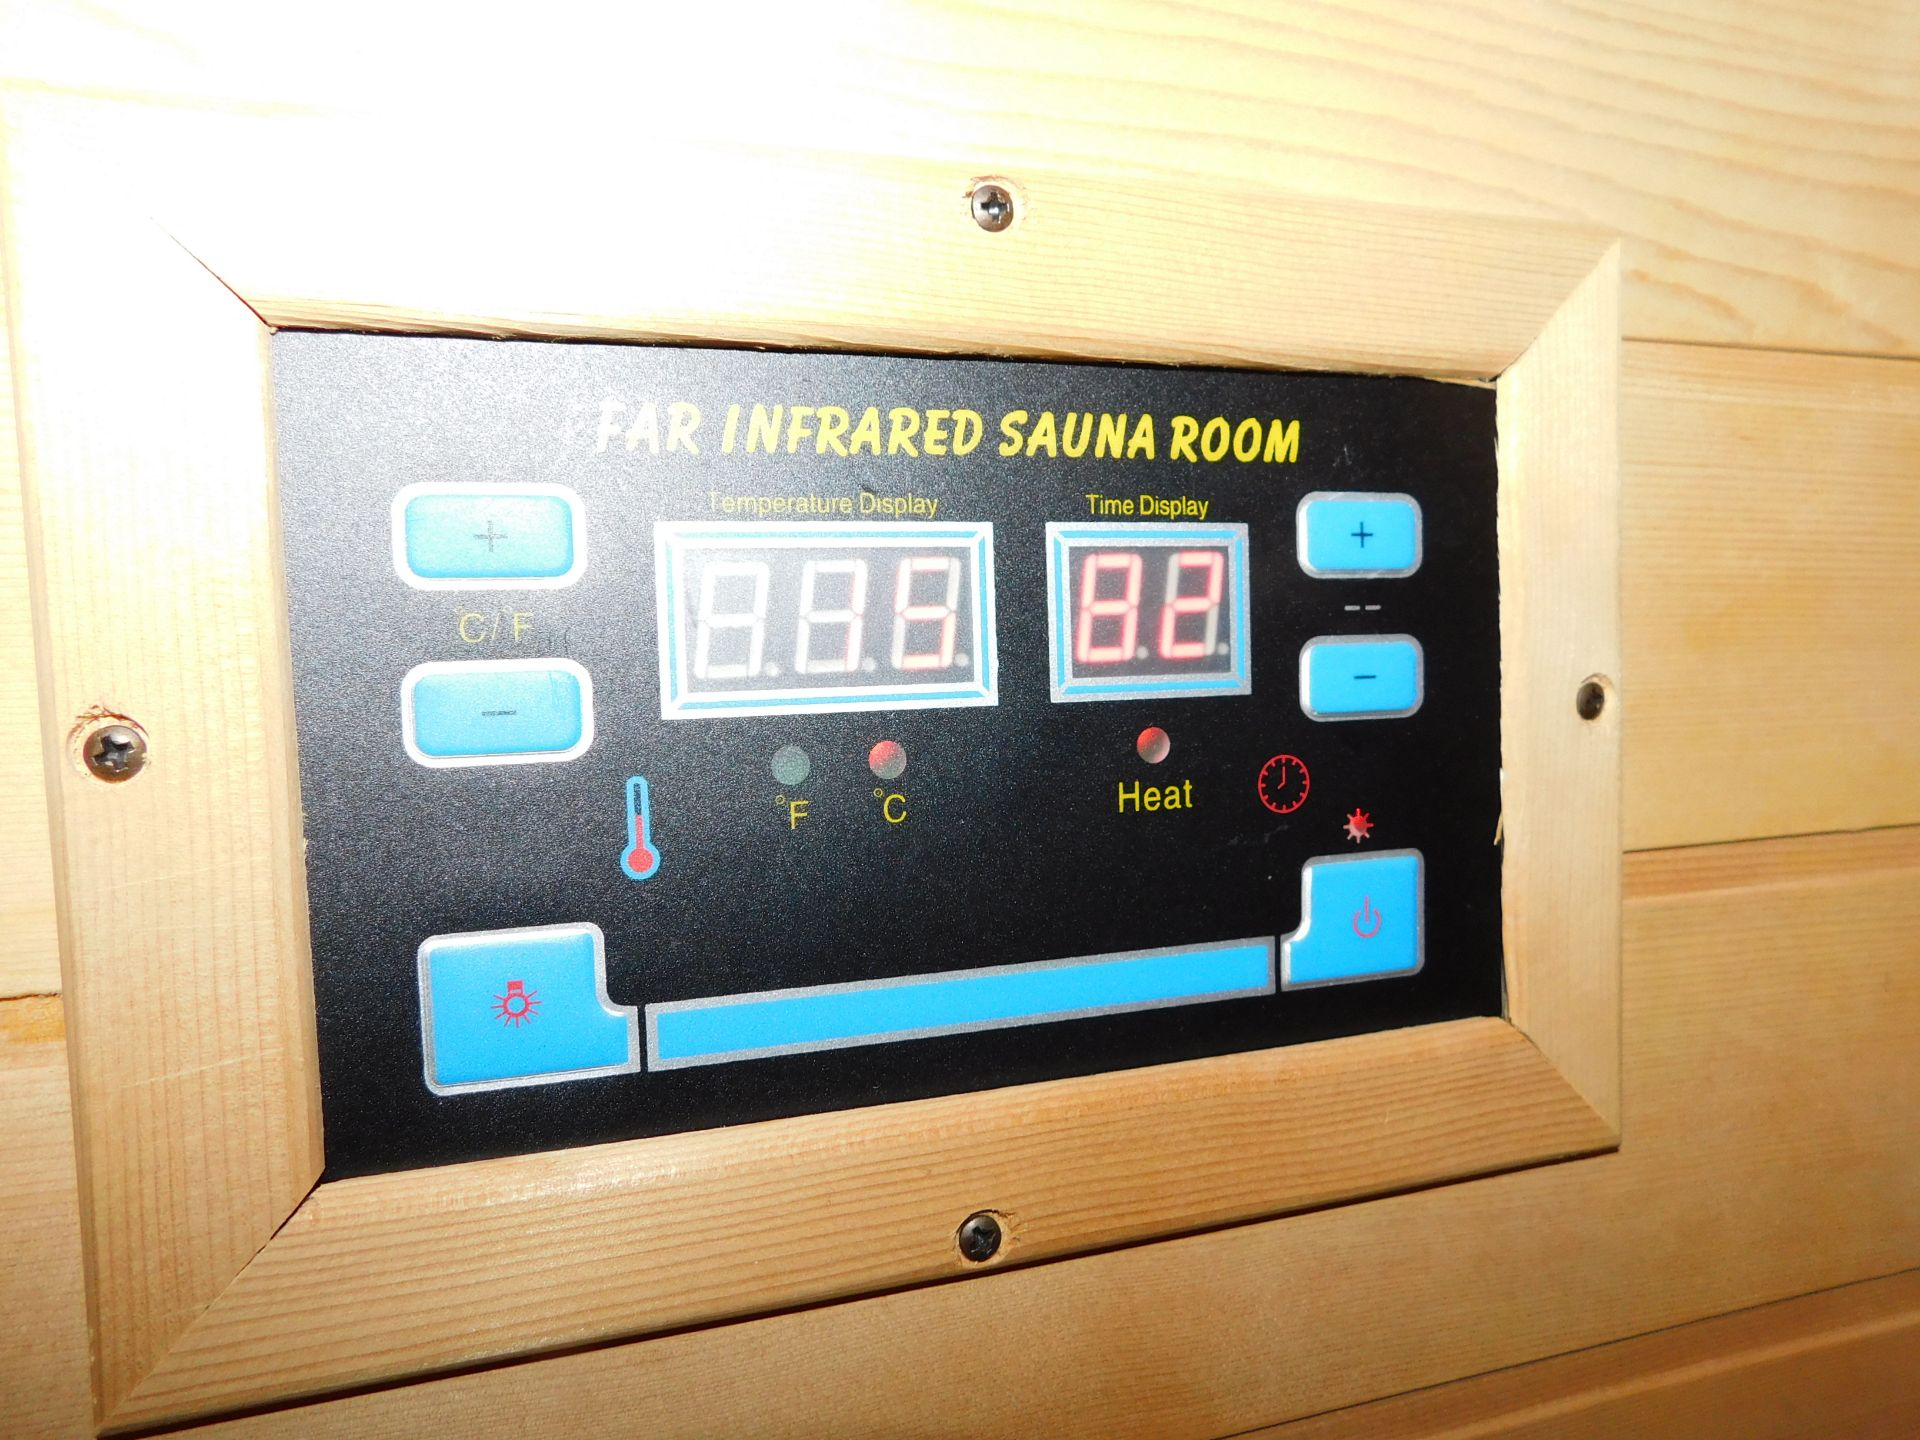 FAR Freestanding Infrared Sauna, W1.8m x H1.9m x D1.2m (Located Corby – See General Notes for - Image 5 of 7